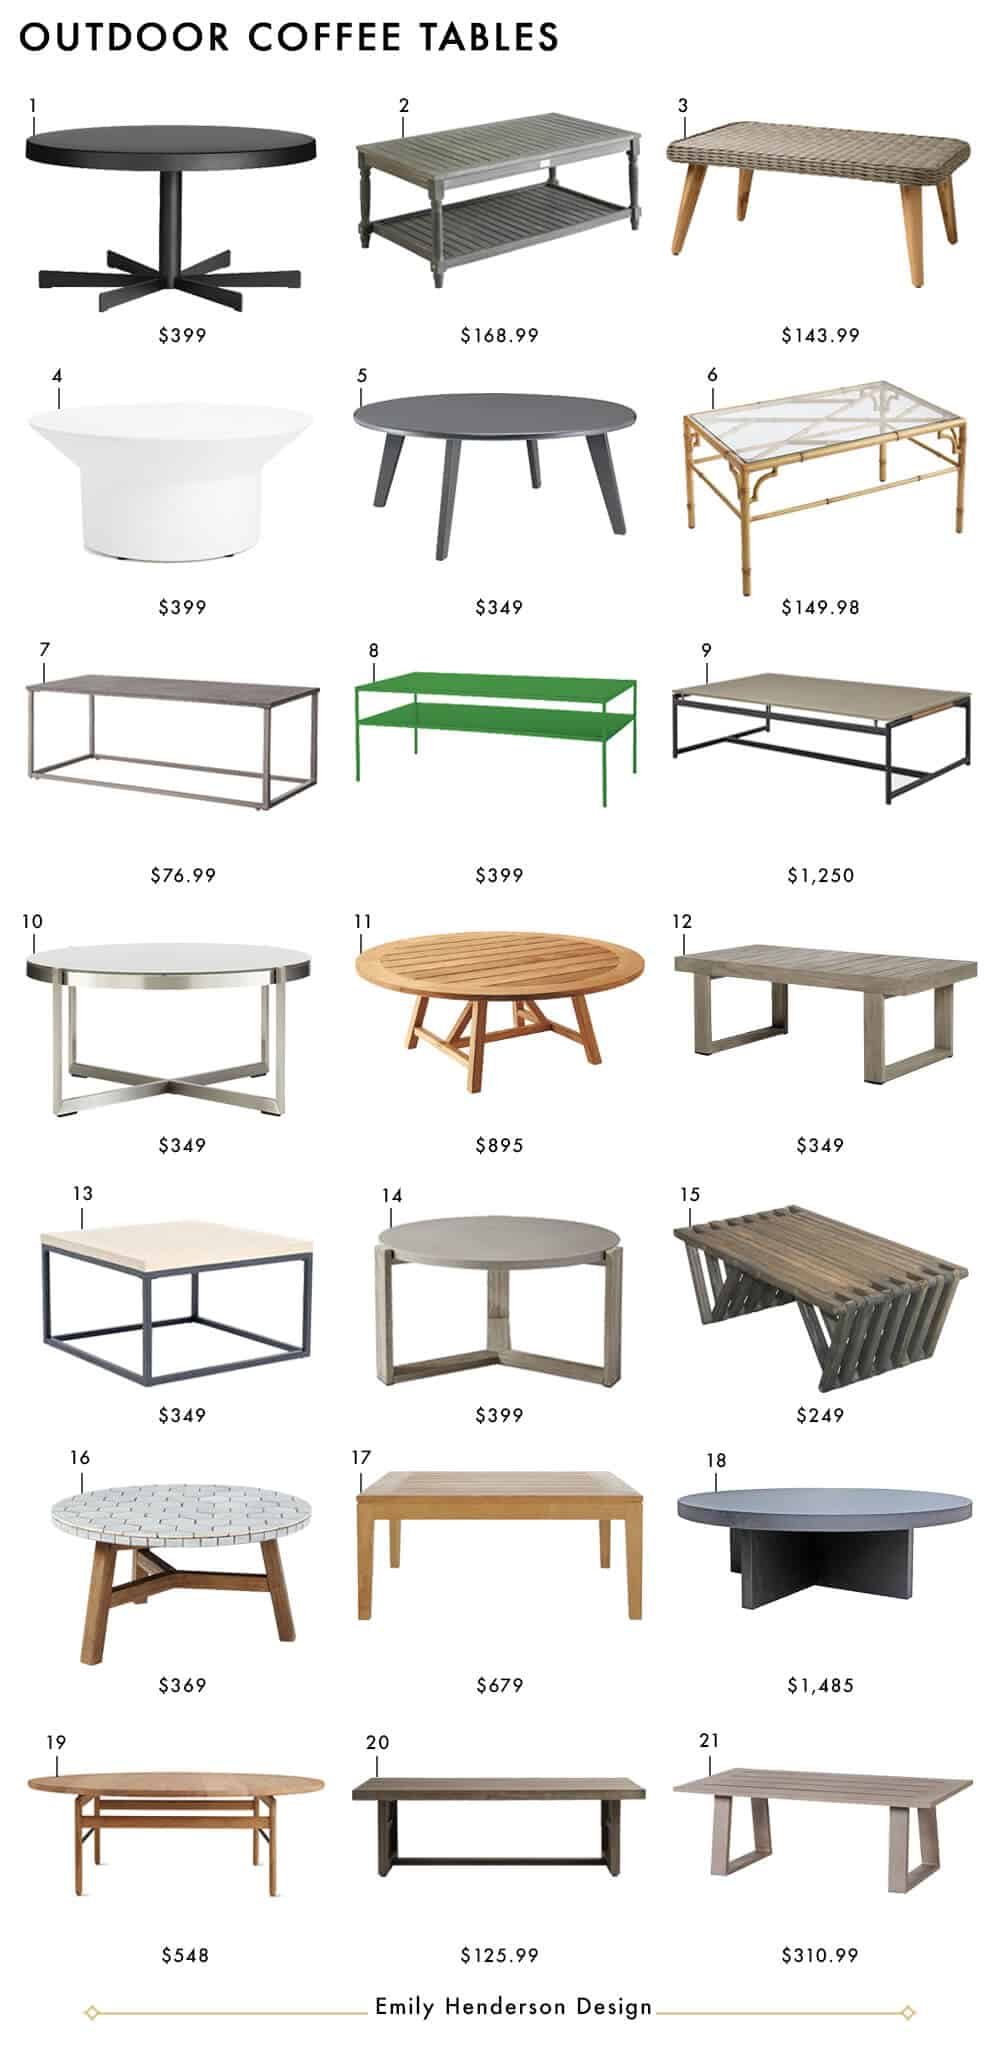 Outdoor Coffee Tables Emily Henderson Design Patio Furniture Roundup